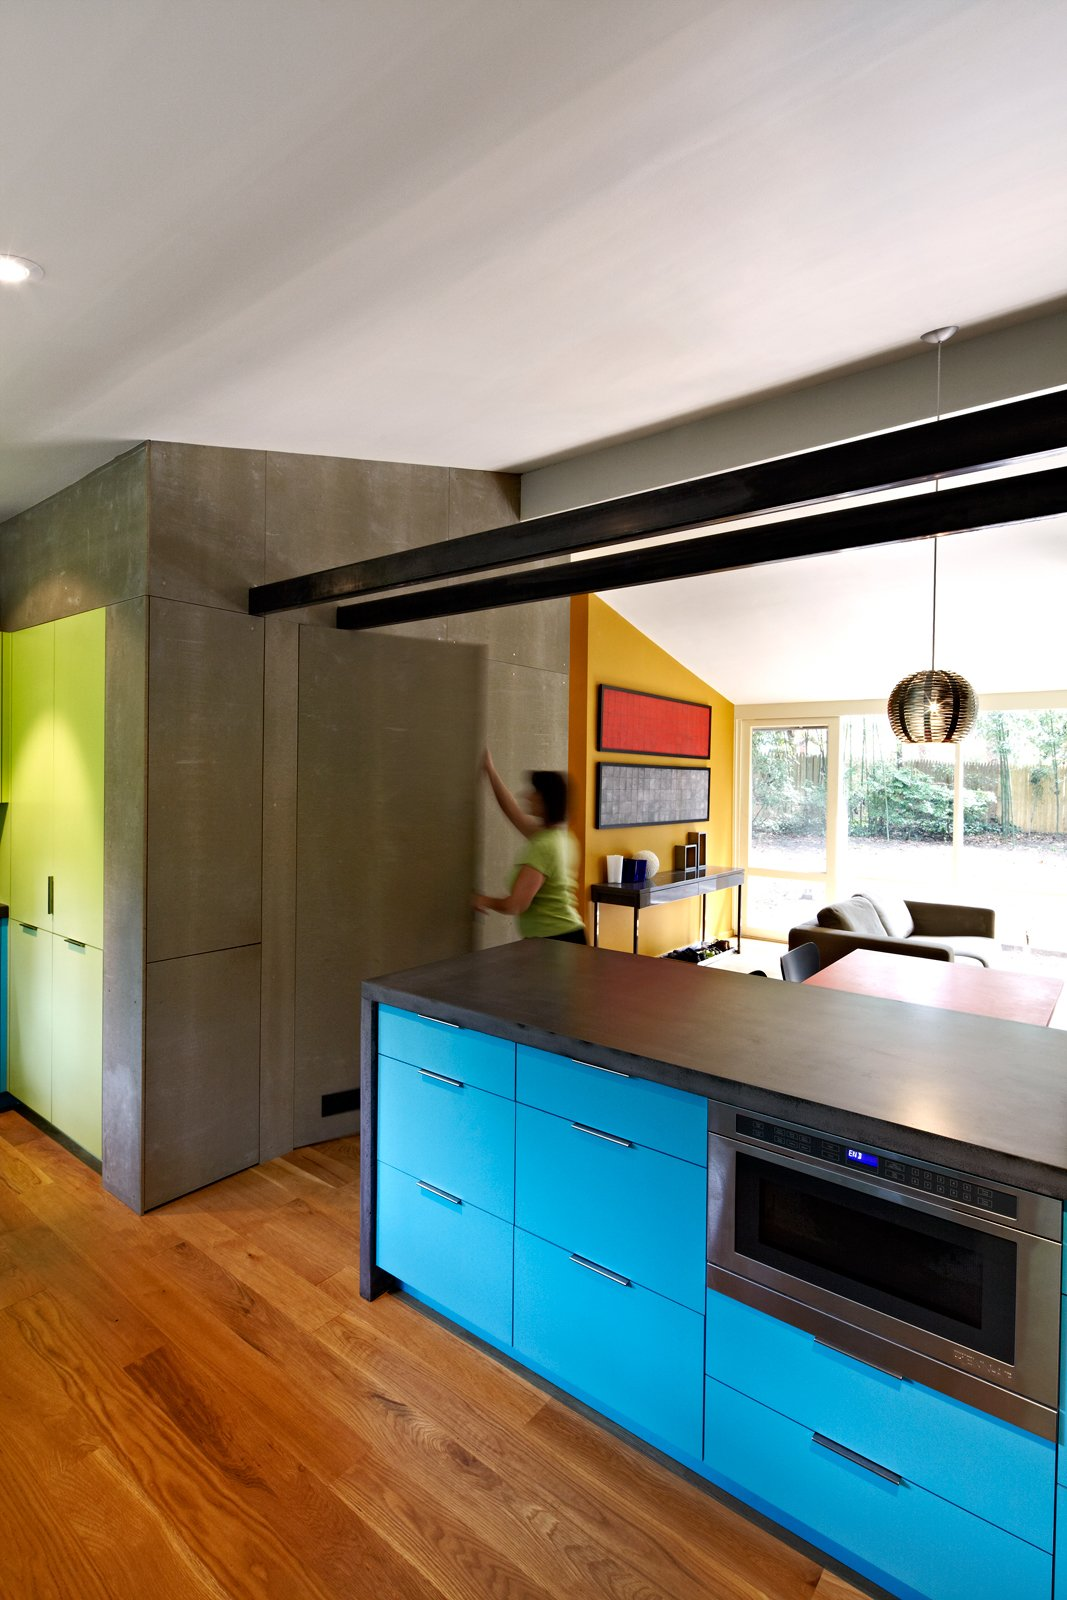 A dark concrete counter and blue laminate cabinets surround the Jenn-Air microwave drawer in architect Janet Bloomberg's kitchen. The pendant hanging above the table is a Tejido Round Suspension from Artemide. Photo by: Greg Powers Tagged: Kitchen, Microwave, Pendant Lighting, Colorful Cabinet, and Medium Hardwood Floor.  Photo 2 of 6 in Modern Kitchen Renovation with Mid-Century Roots